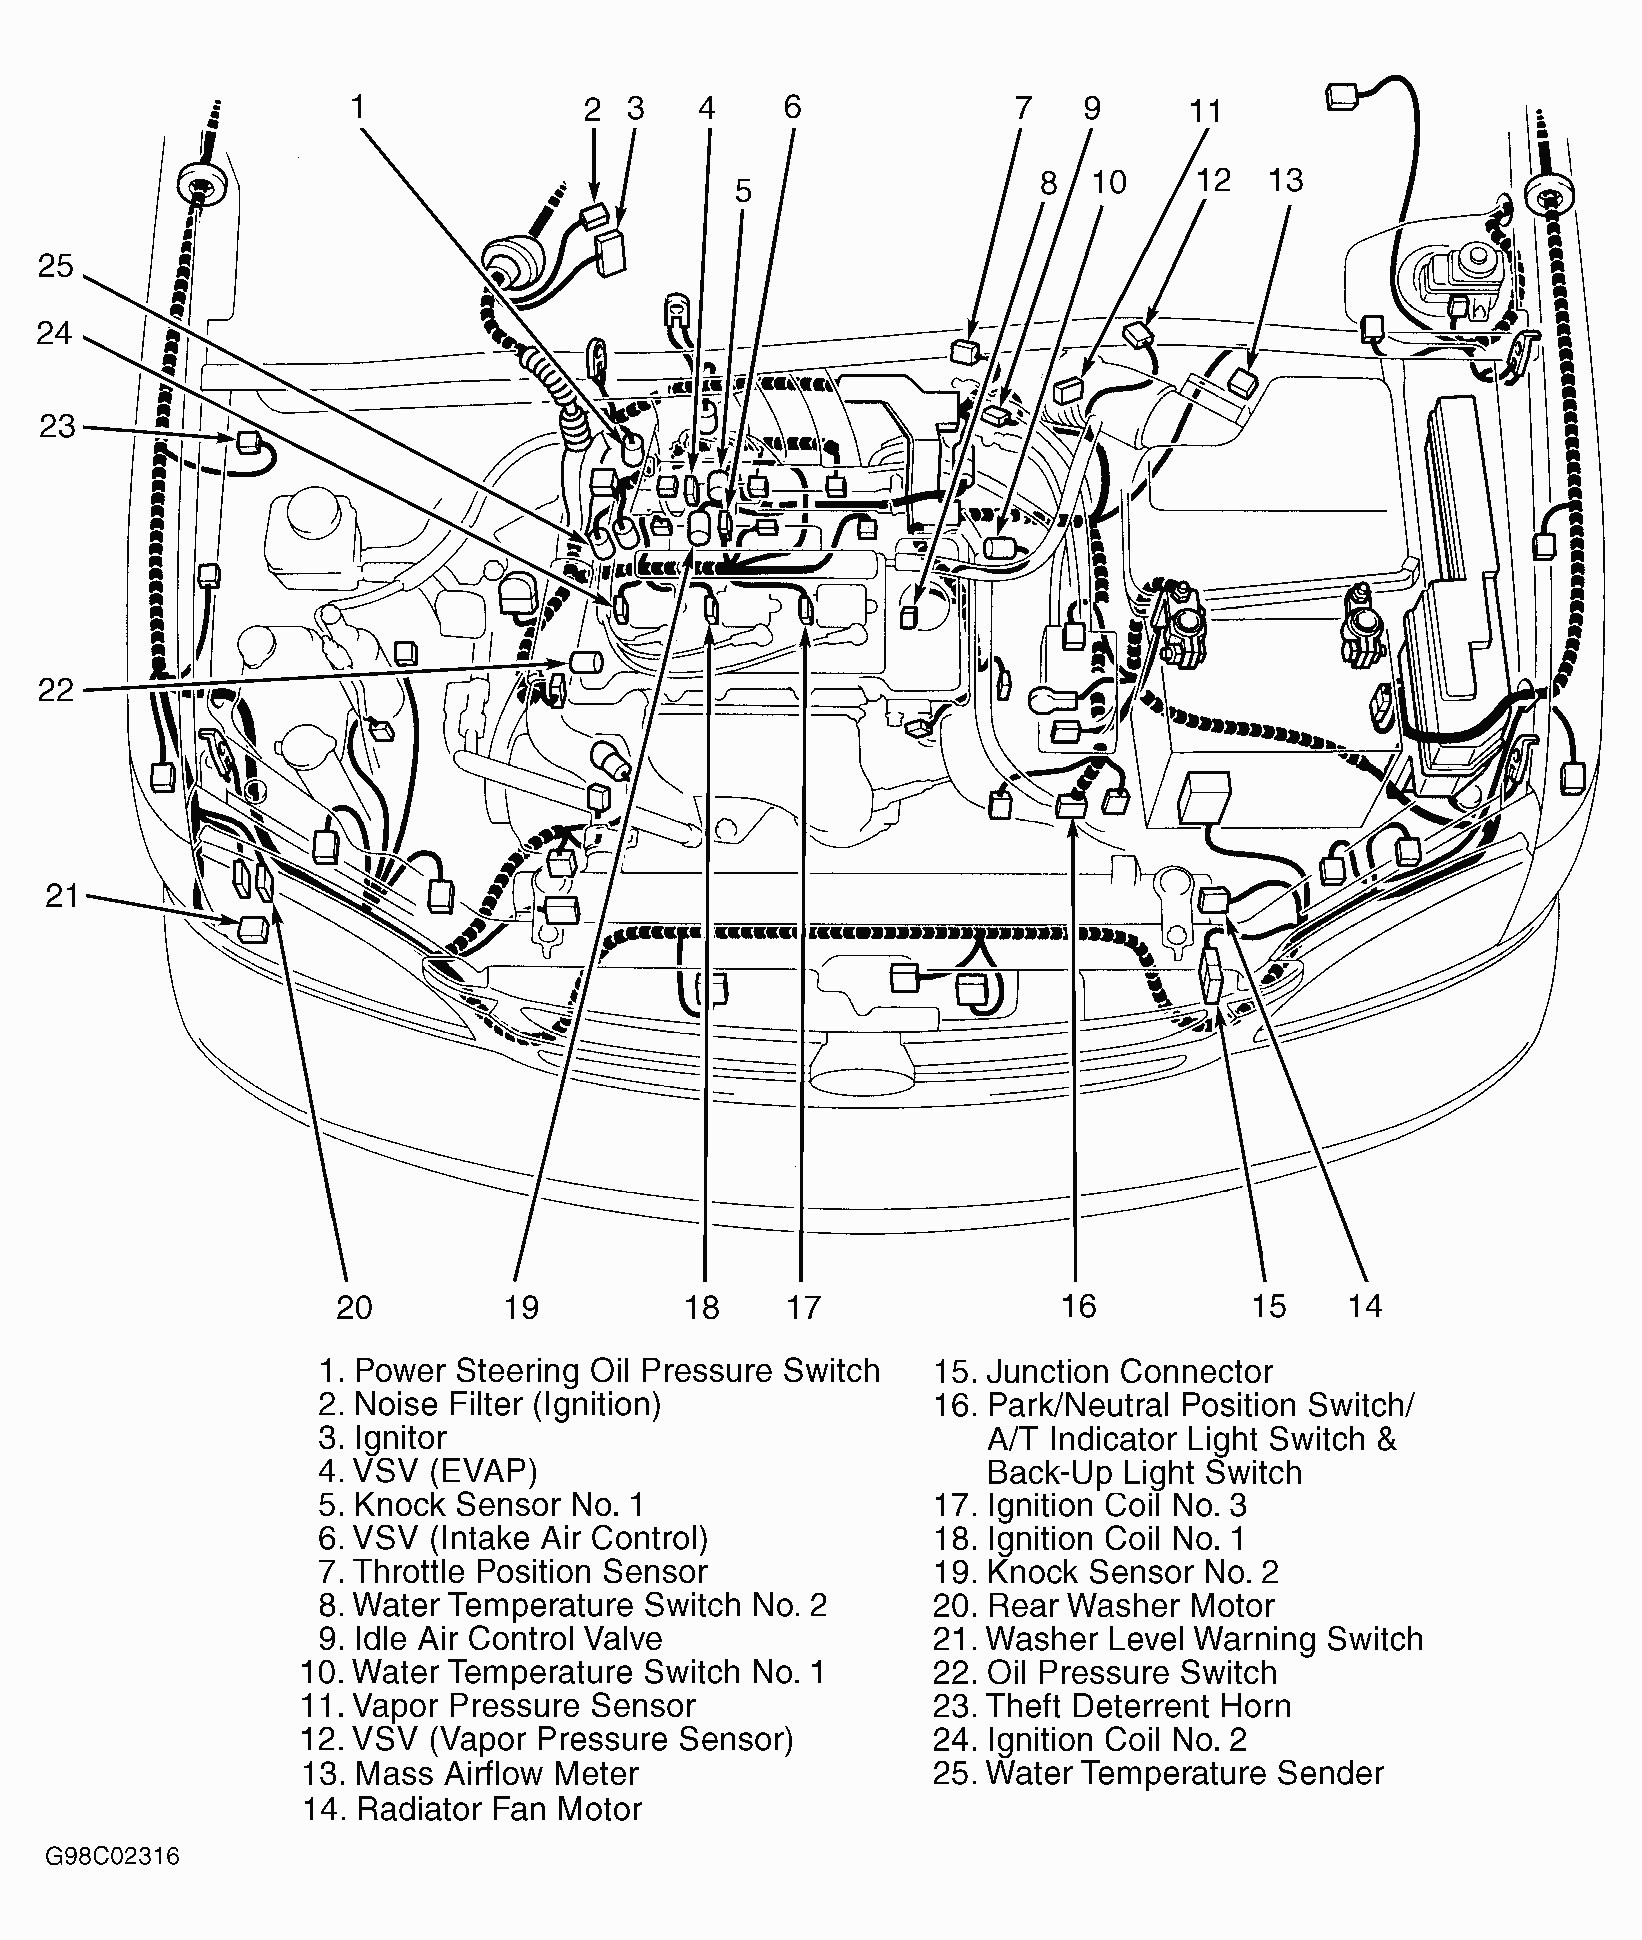 98 Avalon Stereo Wiring Harness Diagram Trusted 1998 Toyota 2000